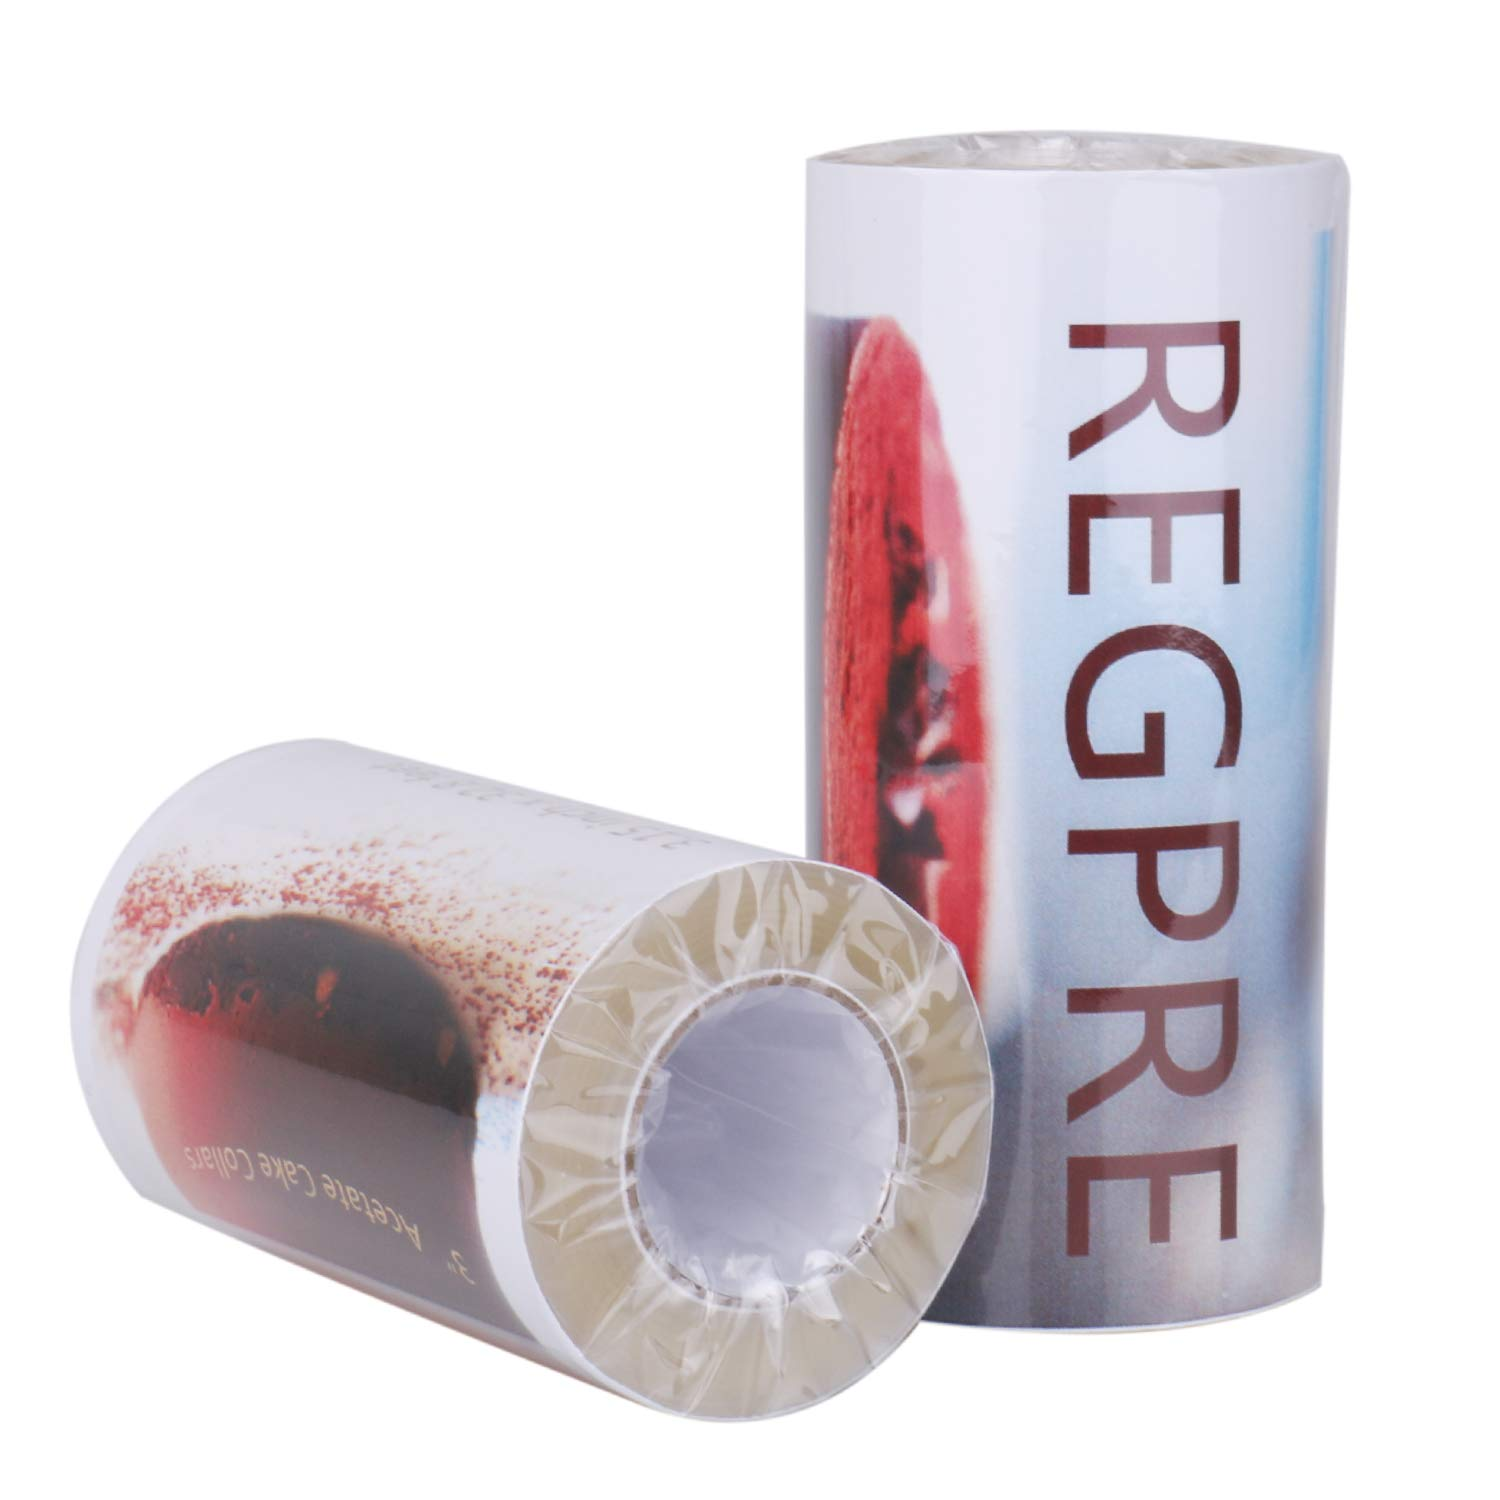 Regpre Acetate Cake Collars 3 Inch x 32.8(ft) Acetate Sheets Roll for Chocolate Mousse Baking